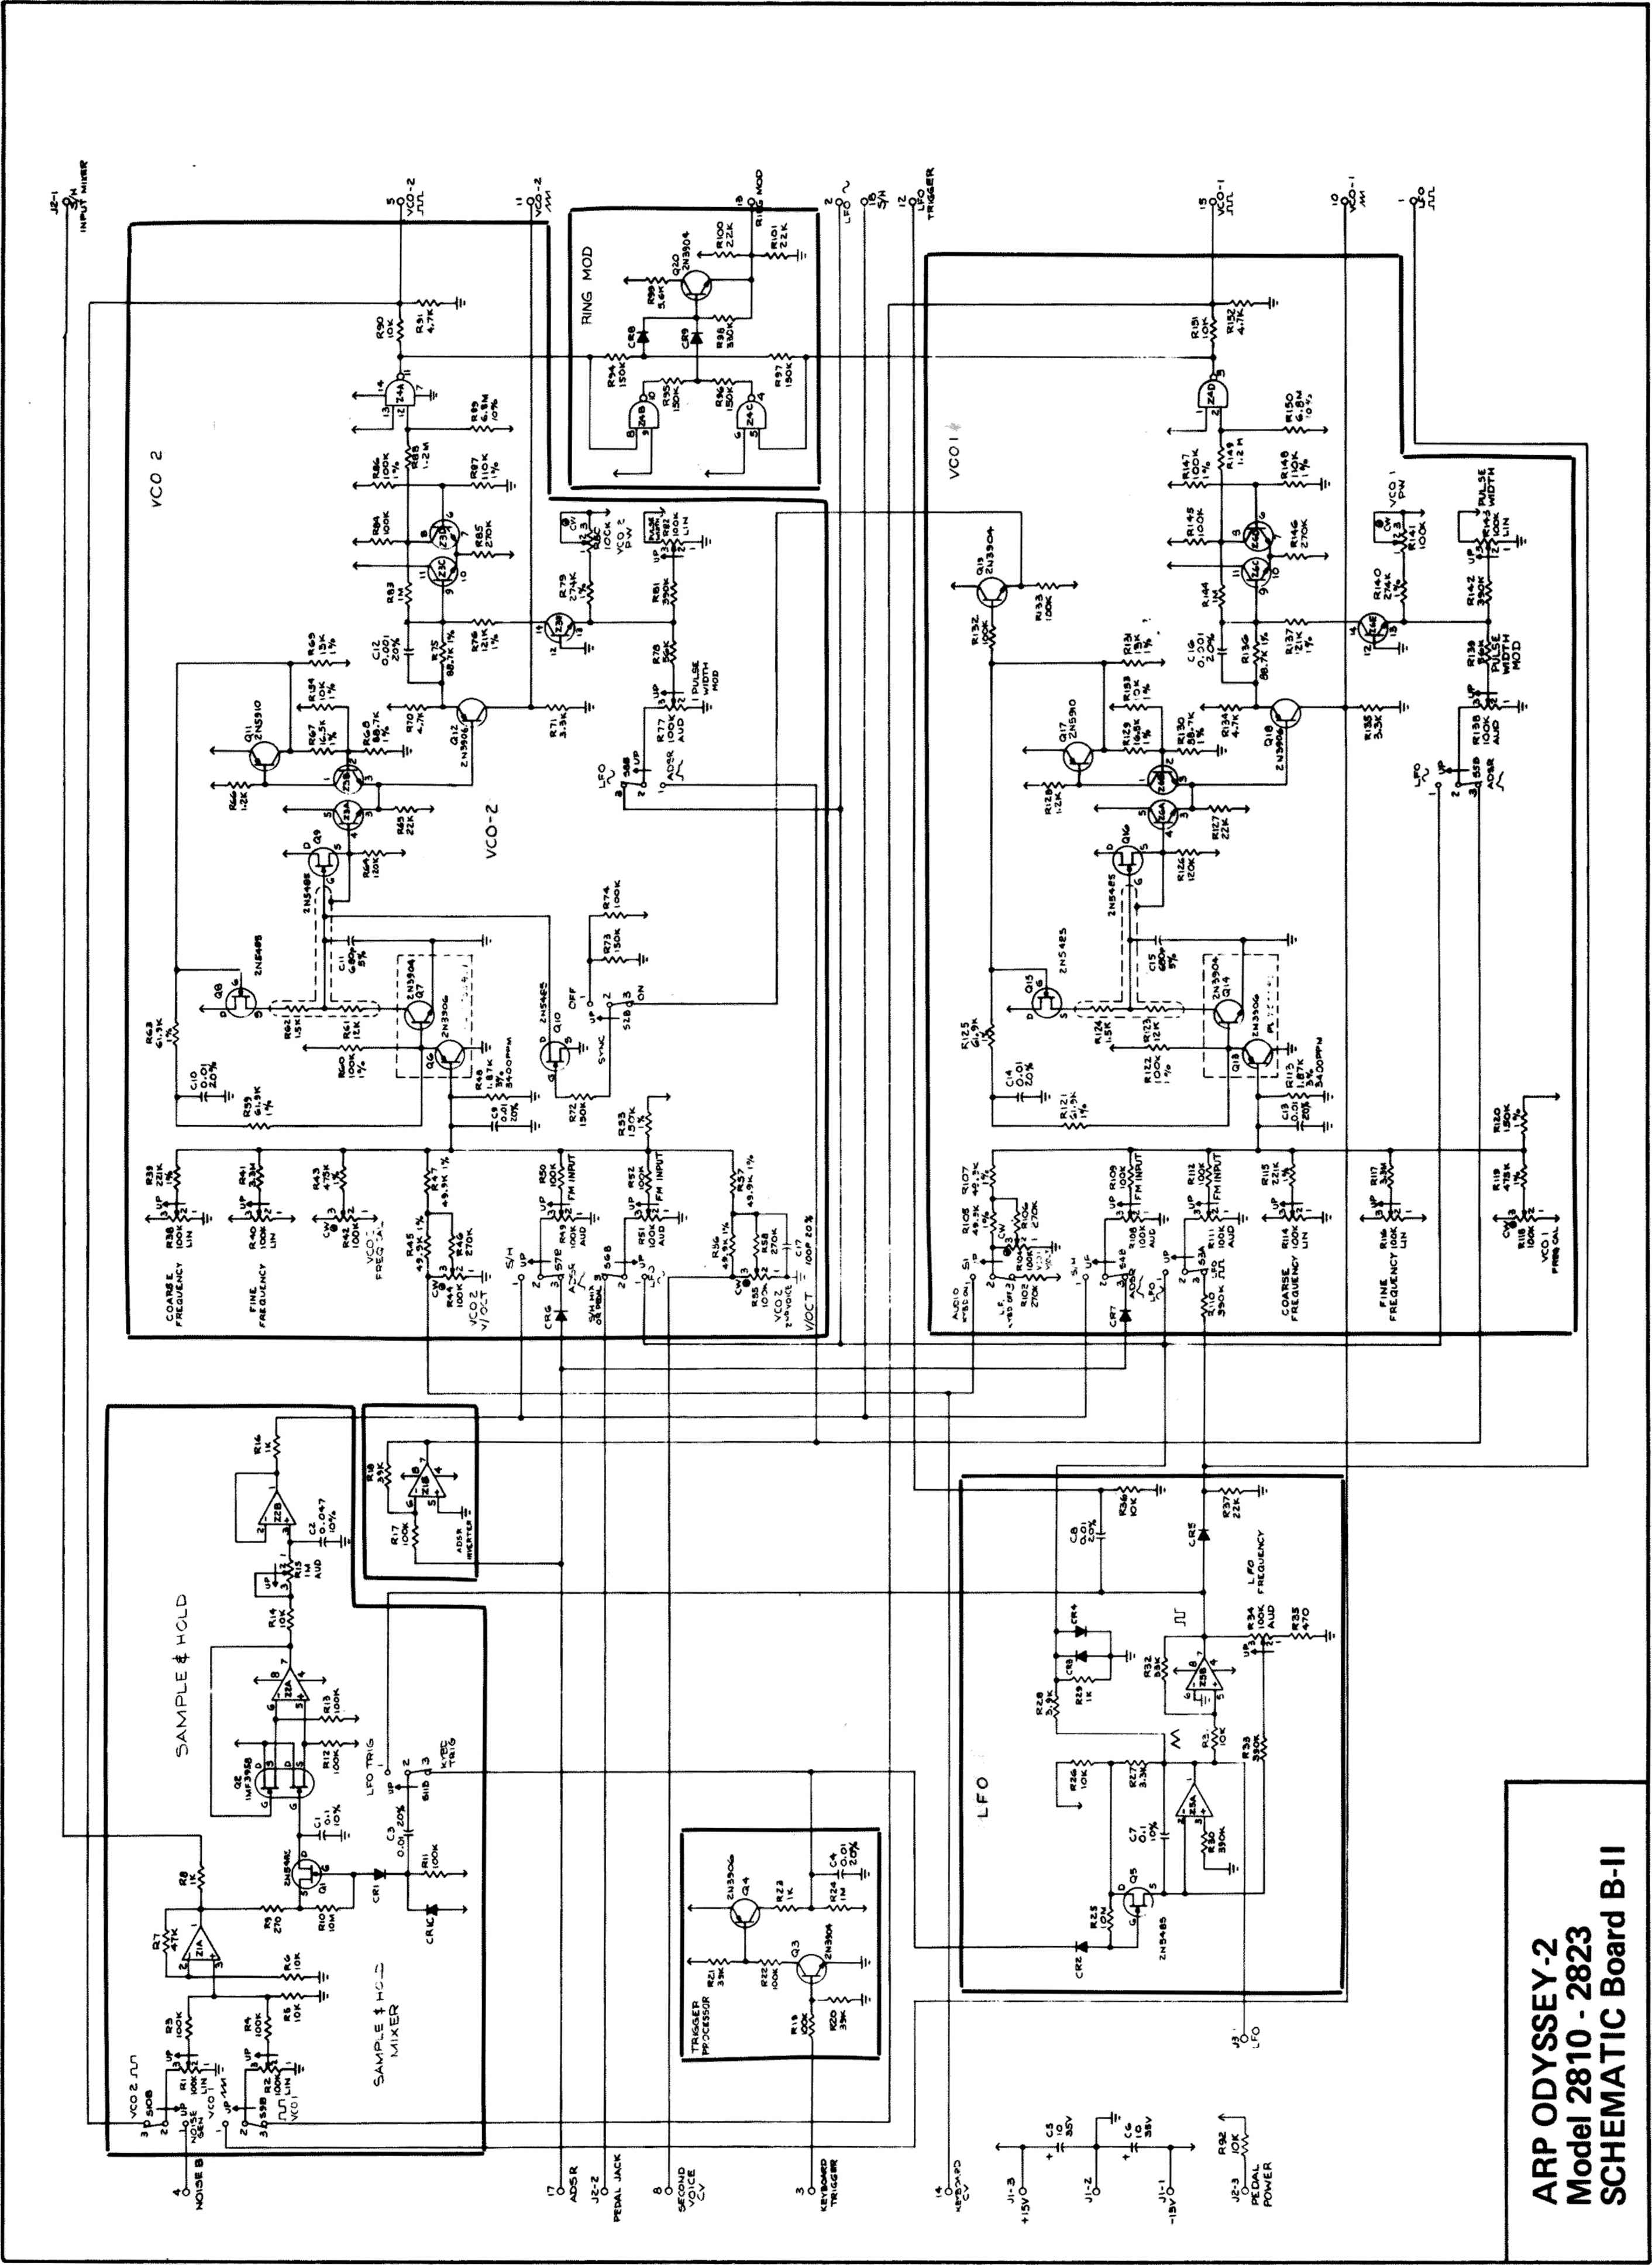 arp odyssey model 2800 schematic board bl